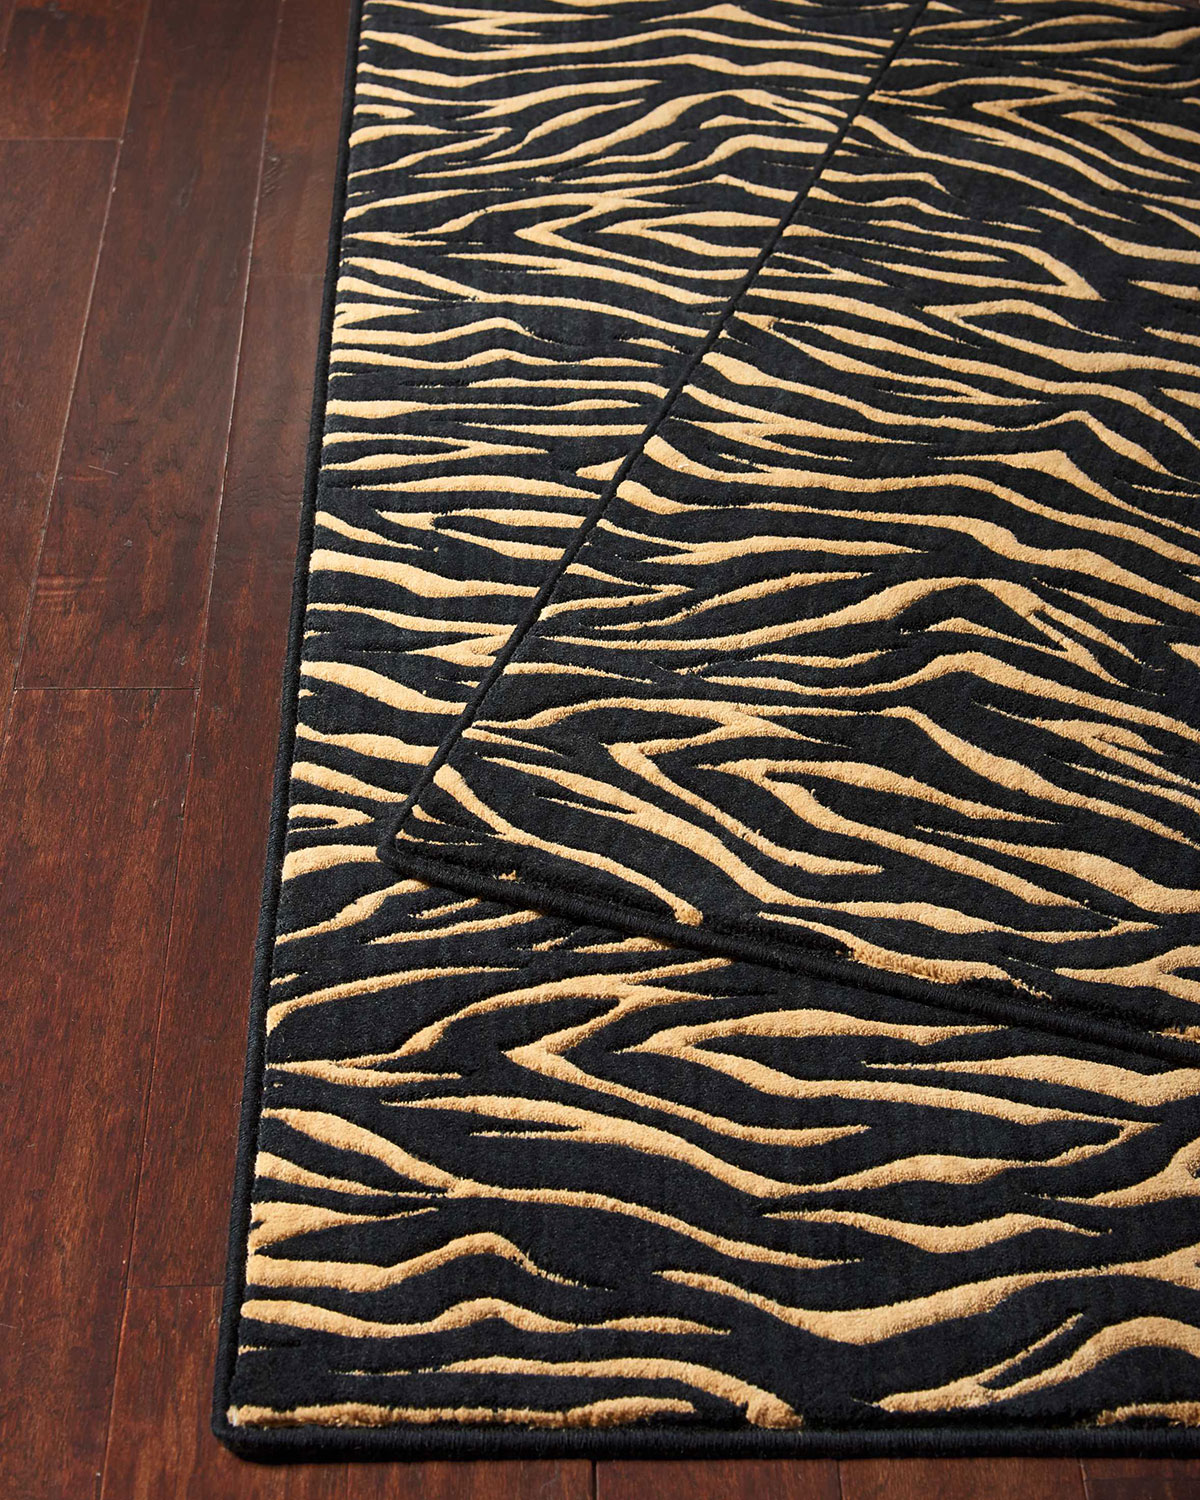 Midnight Tiger Rug, 3' x 5' Product Image